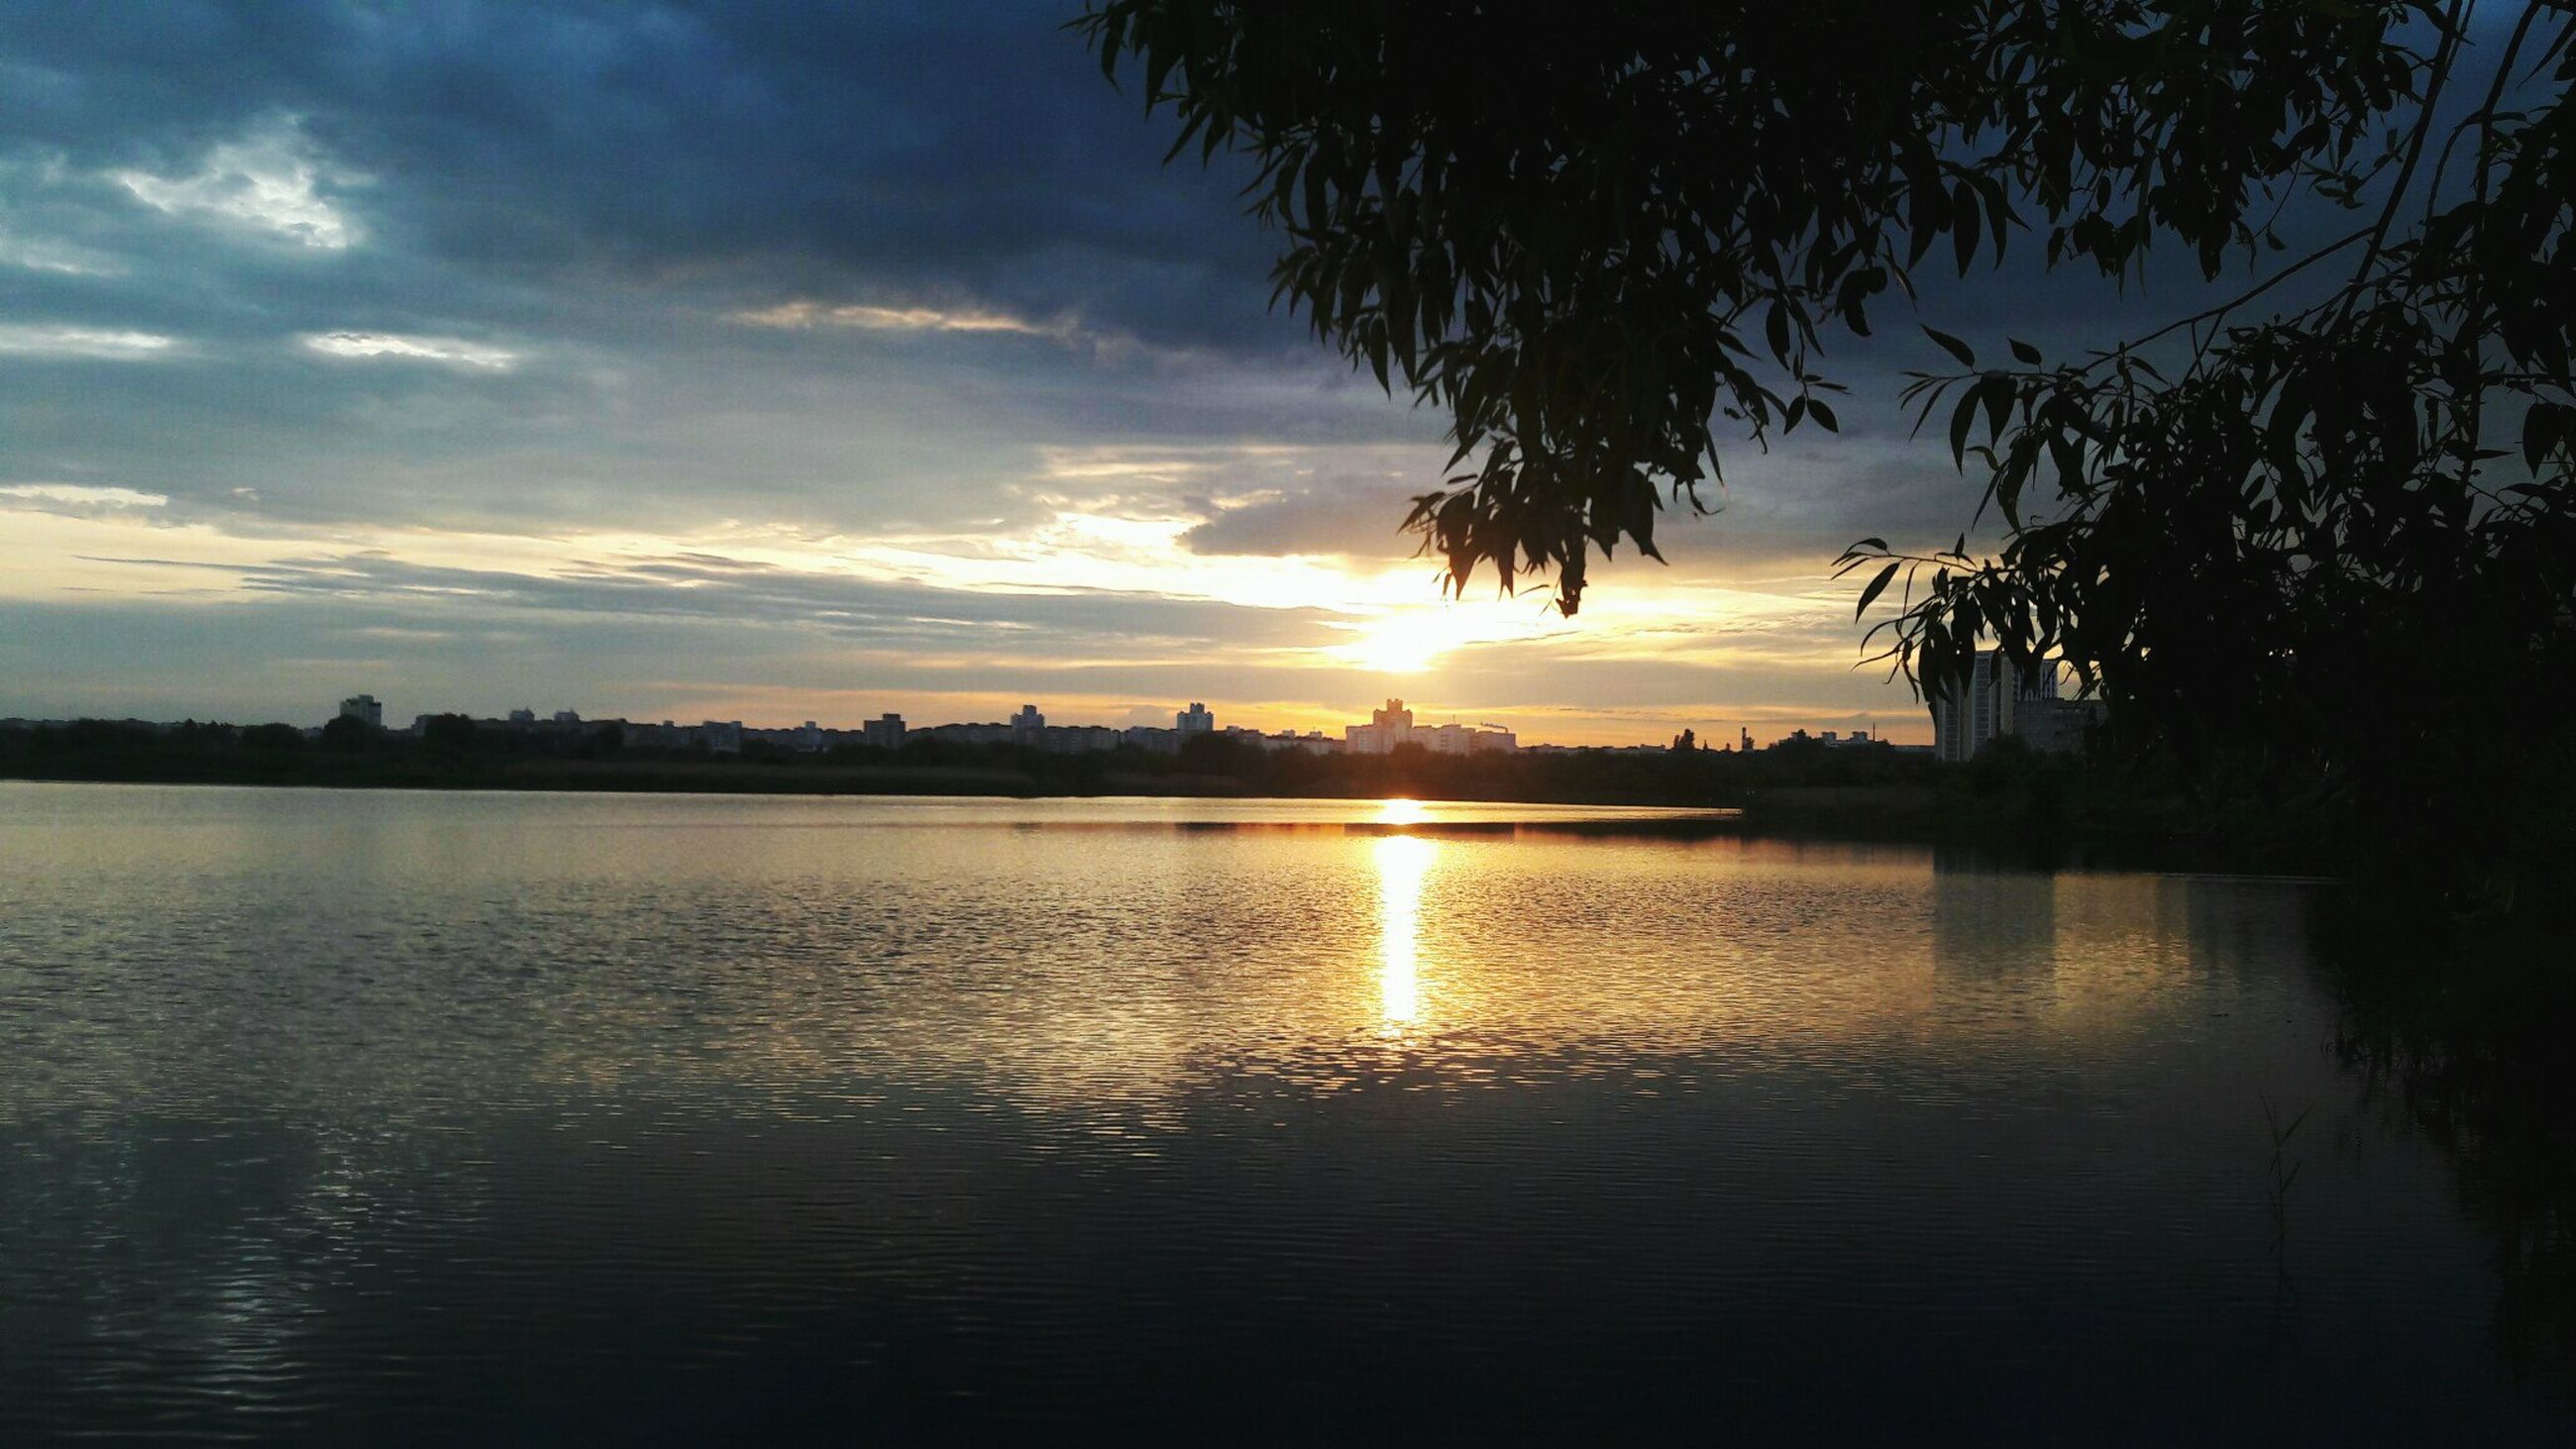 sunset, water, sky, reflection, tree, nature, palm tree, beauty in nature, outdoors, scenics, no people, cloud - sky, day